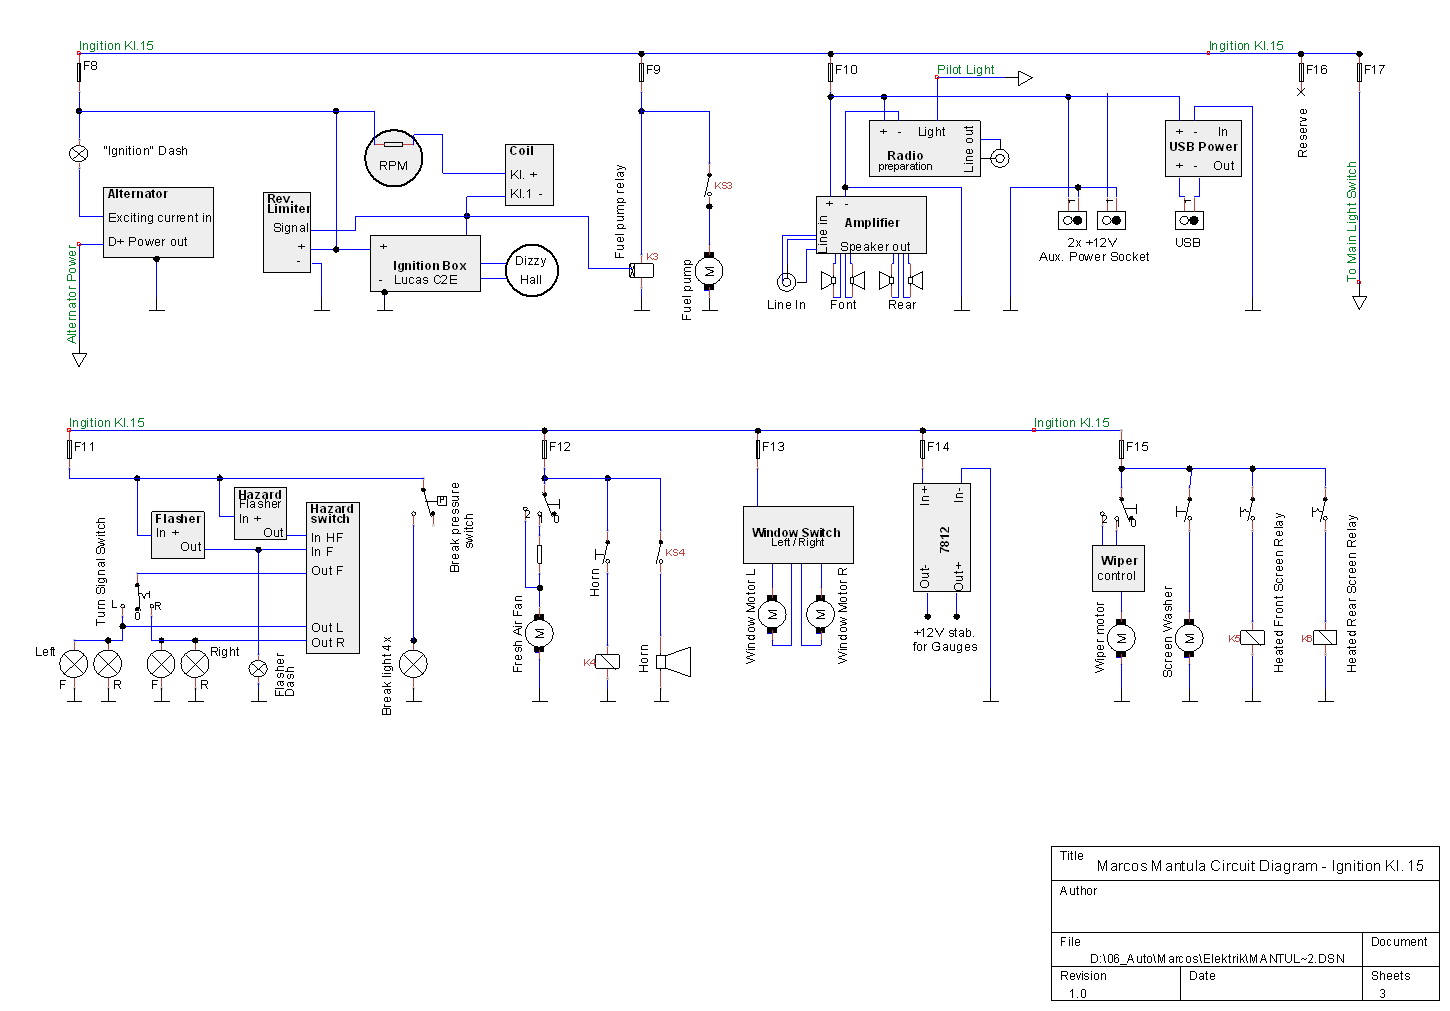 Marcos Mantula A Restoration Story 41 The Electric Wiring Circuit Diagram For Tinycad I Have Choosen Free And Easy Tool Used Different Style To Draw Diagrams It Is Not As They Are Wired Arranged Like Current